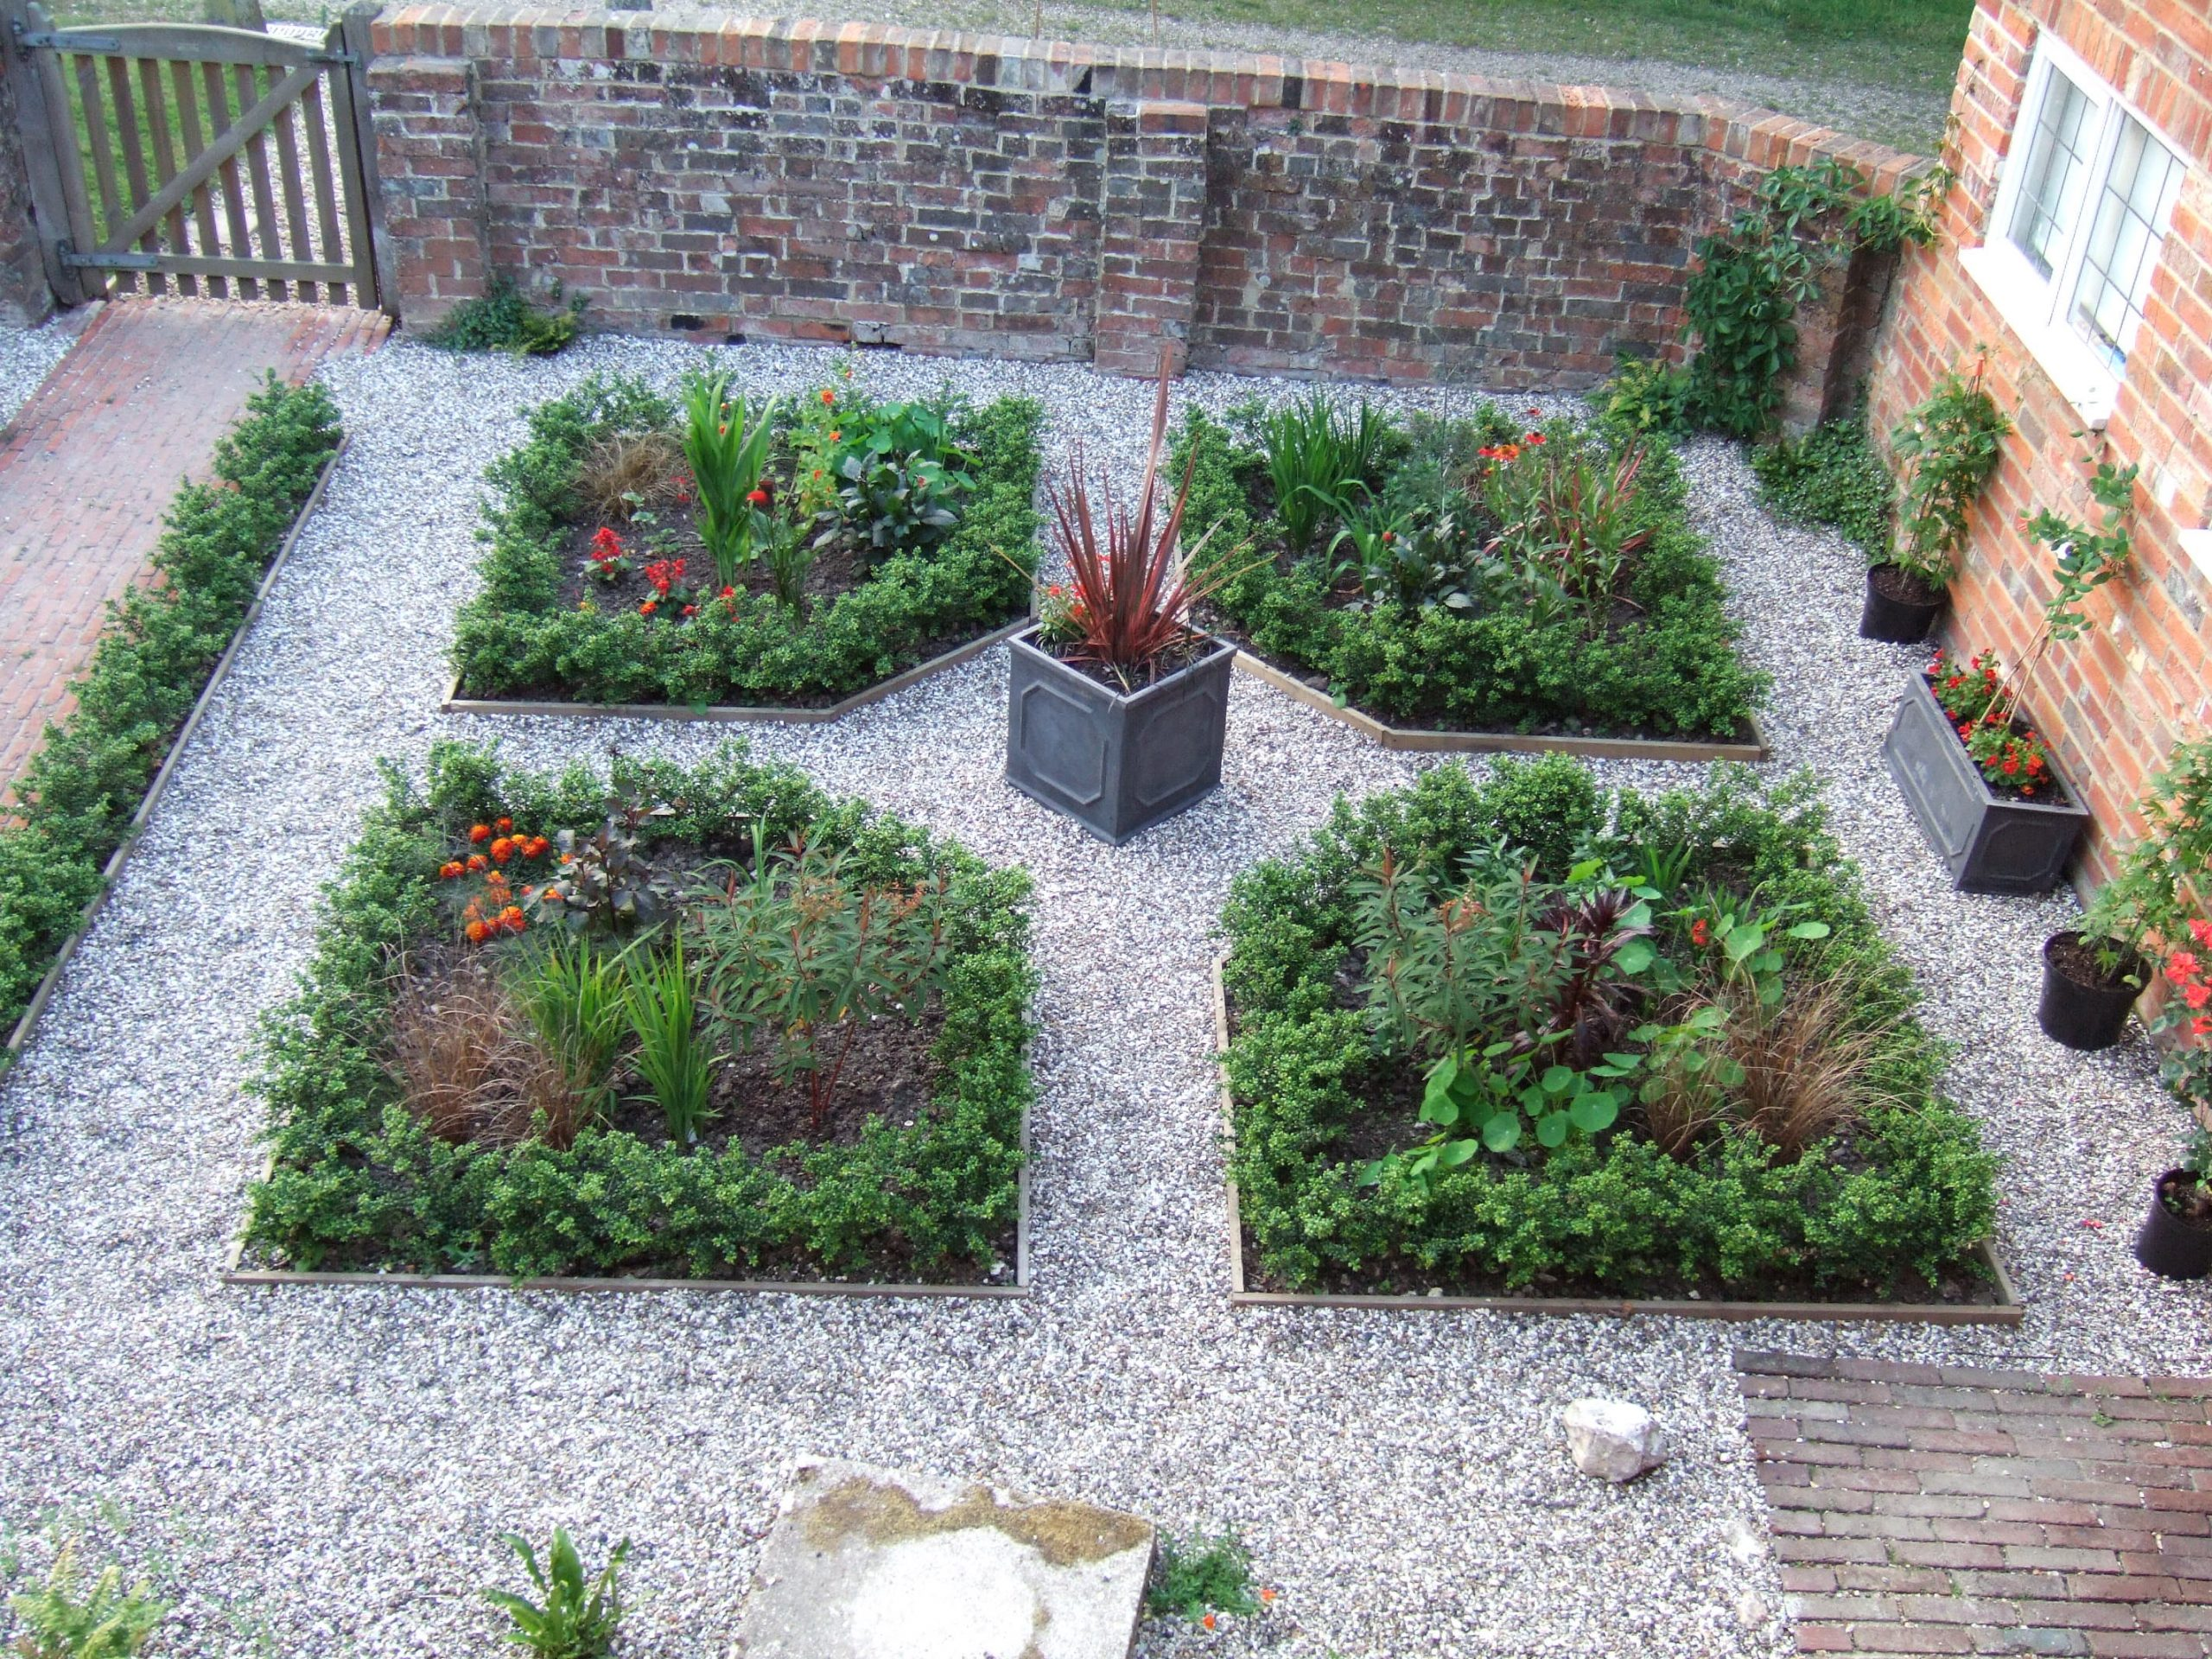 How to plant a low maintenance garden?